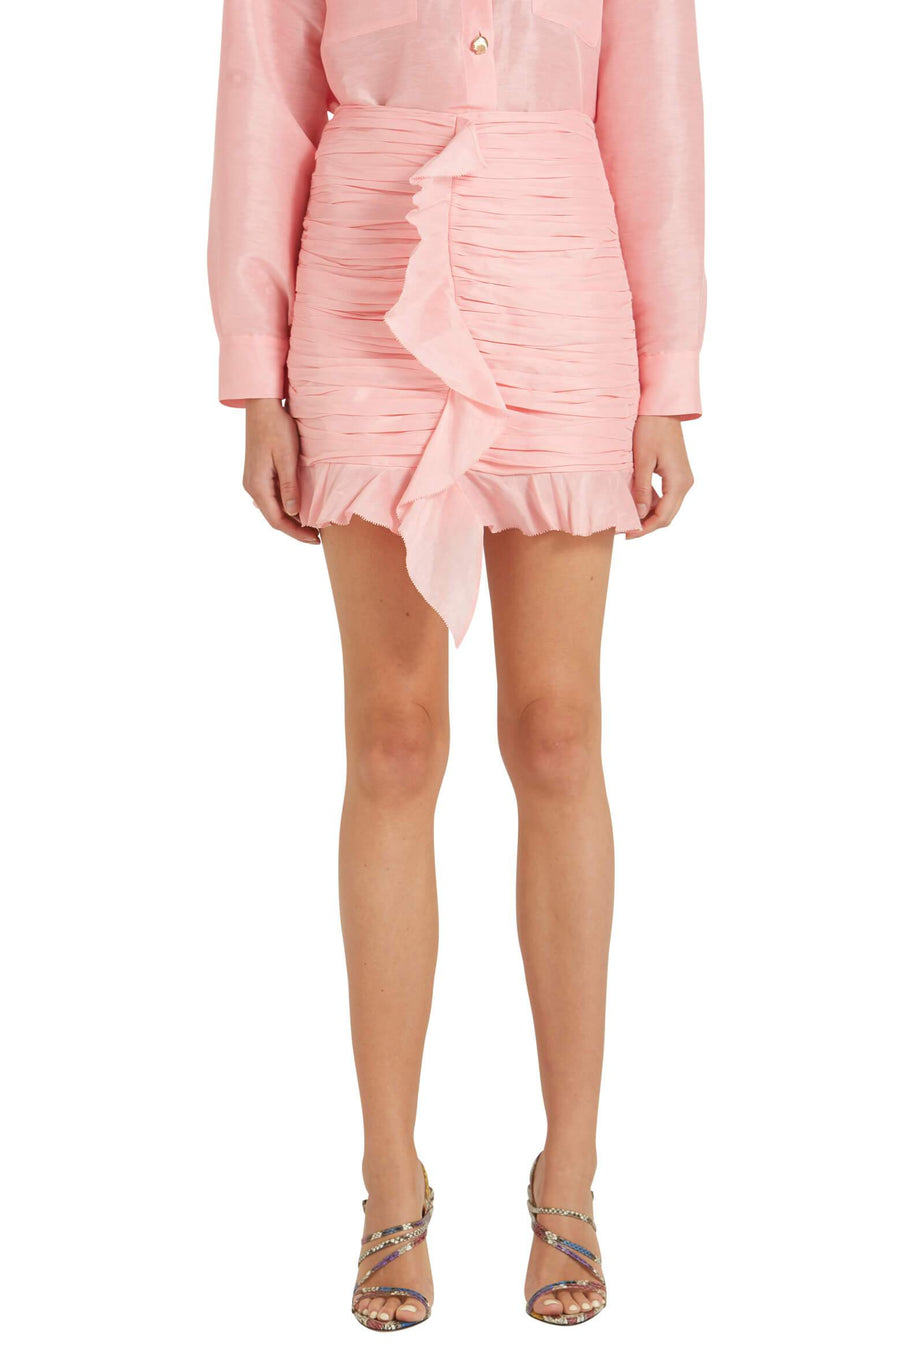 Hansen & Gretel Levi Skirt in Pink Fizz from The New Trend